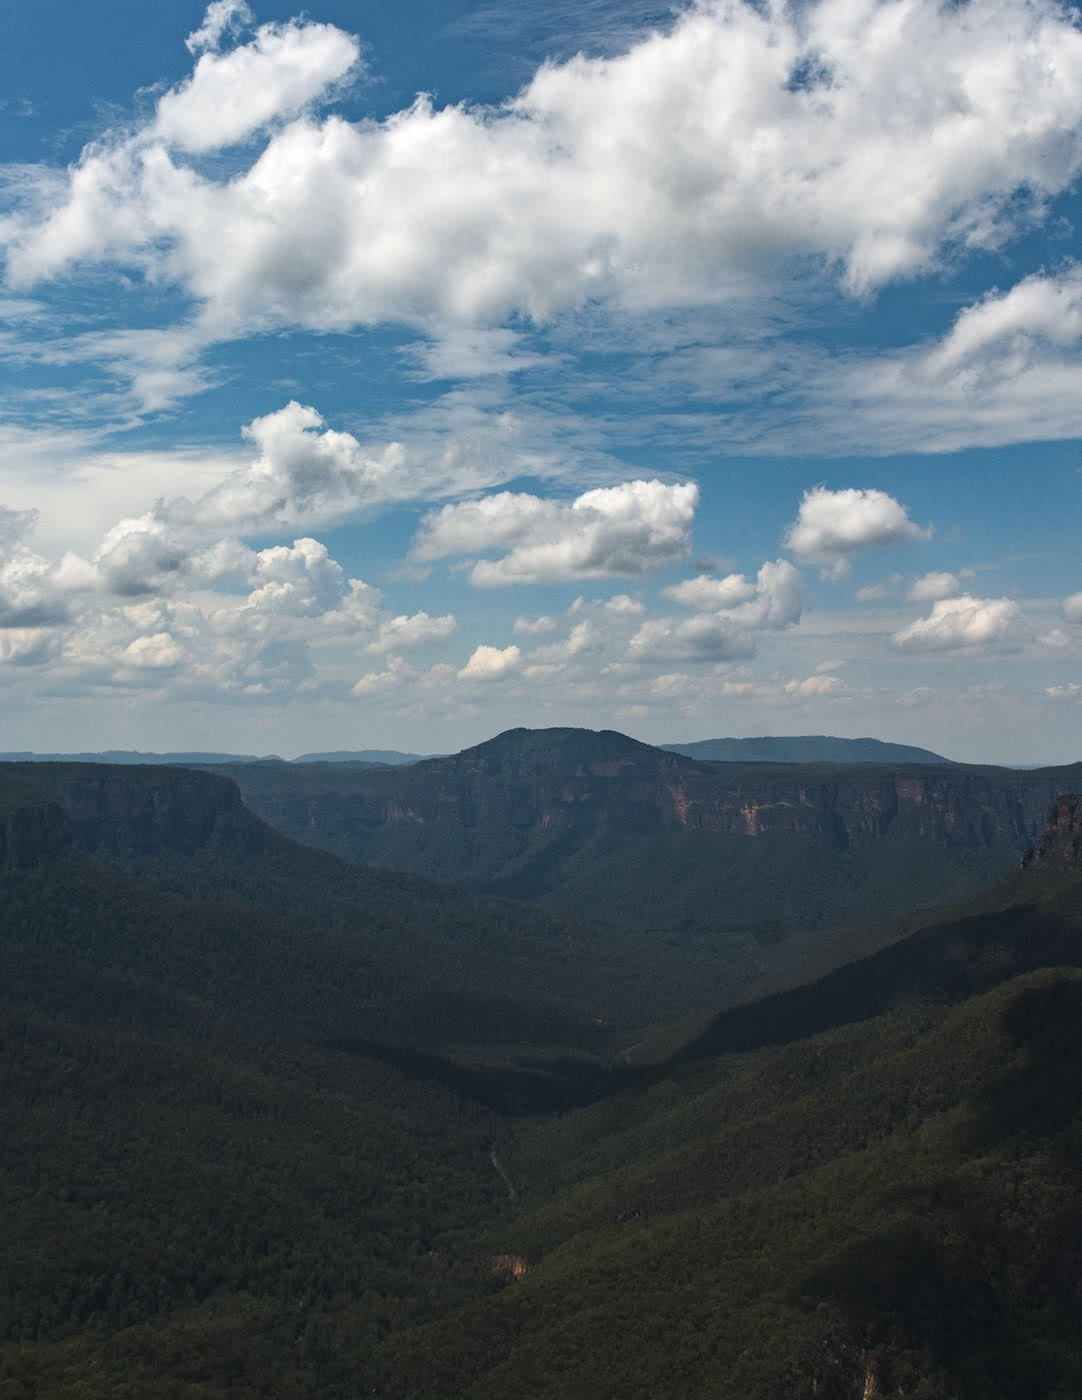 Escape From The Urban // Blackheath To Acacia Flat (NSW), Matt n Kat Pearce, Grose Valley, Blue Mountains, clouds, distance